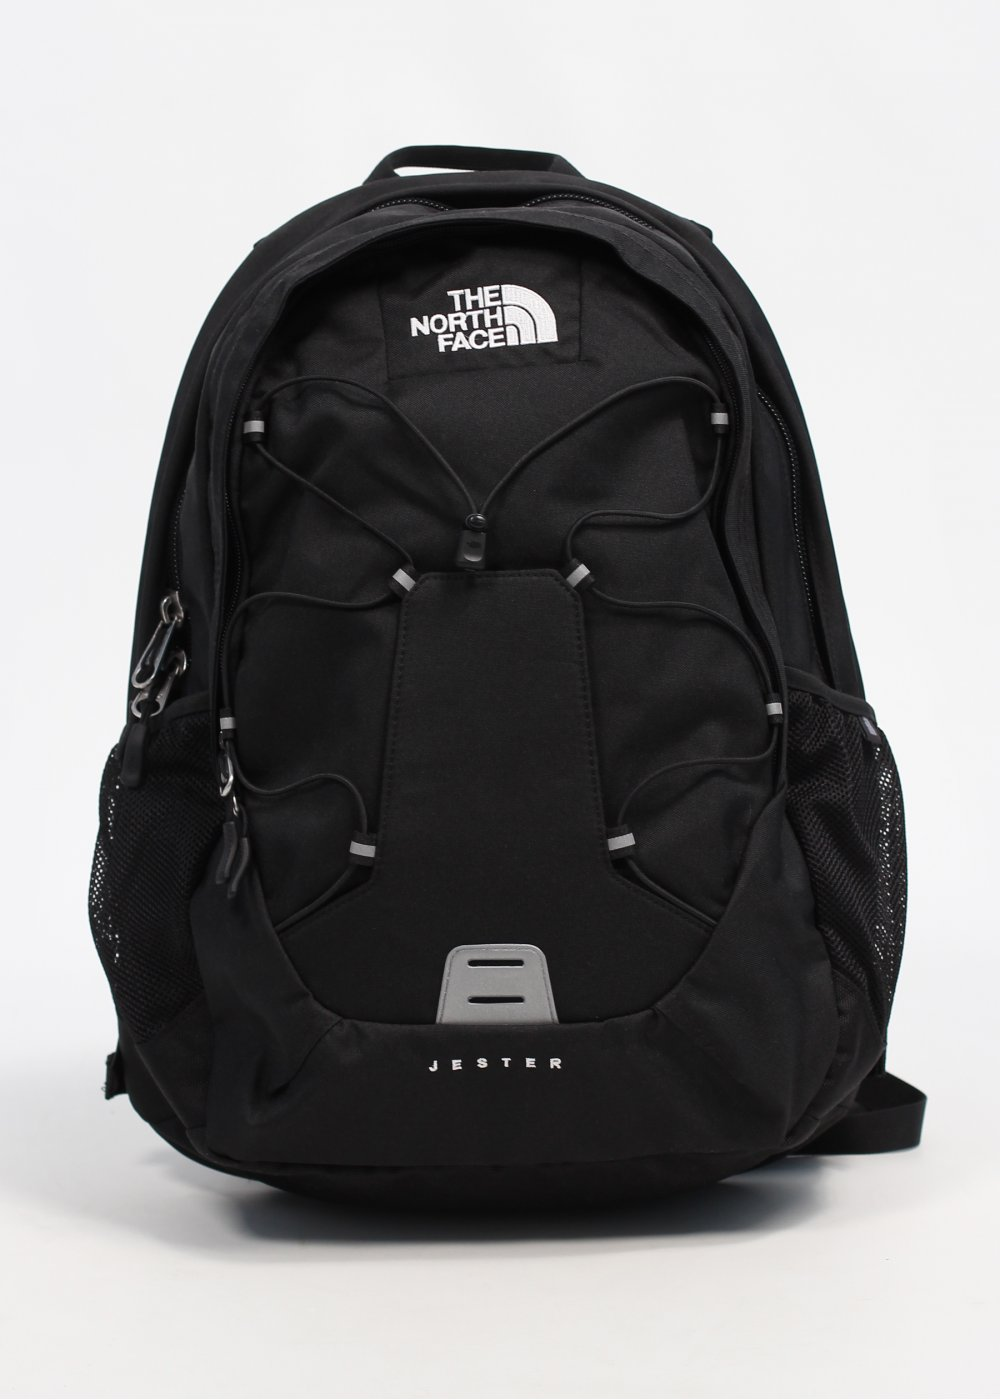 the north face jester bag black